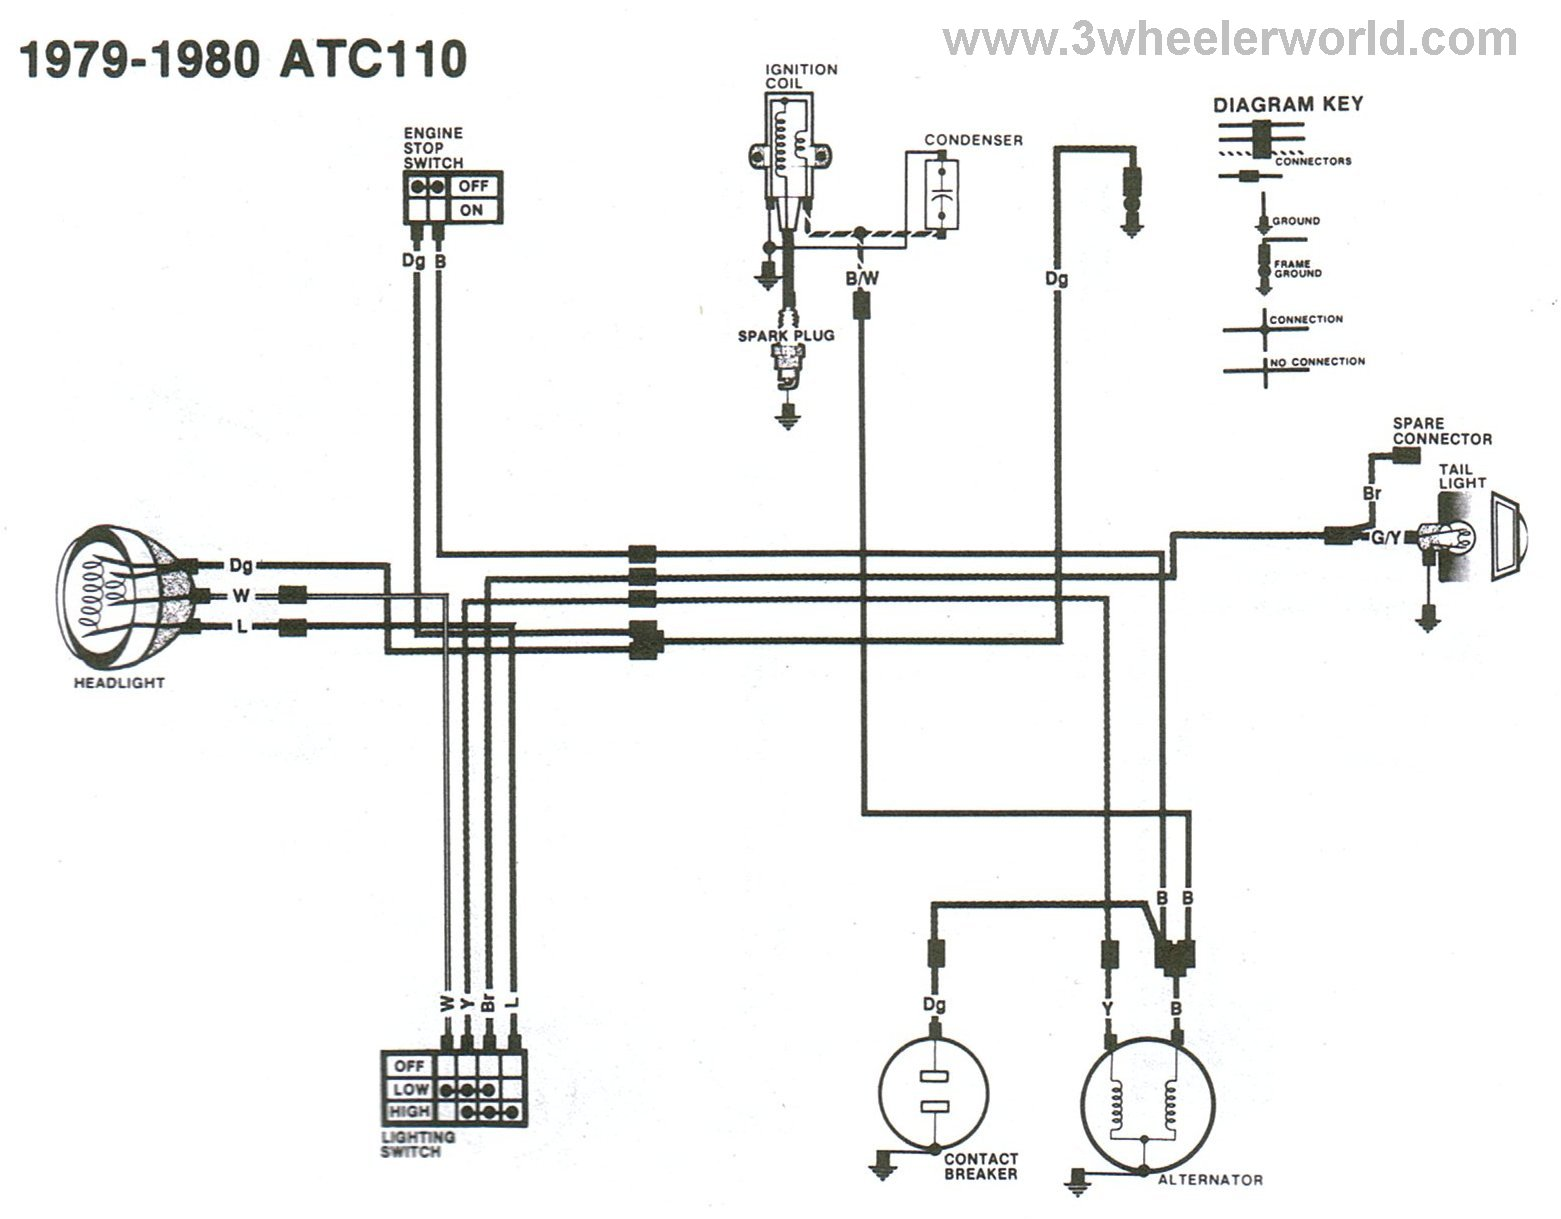 ATC110x79Thru80 atc 125 wiring diagram wiring schematics diagram